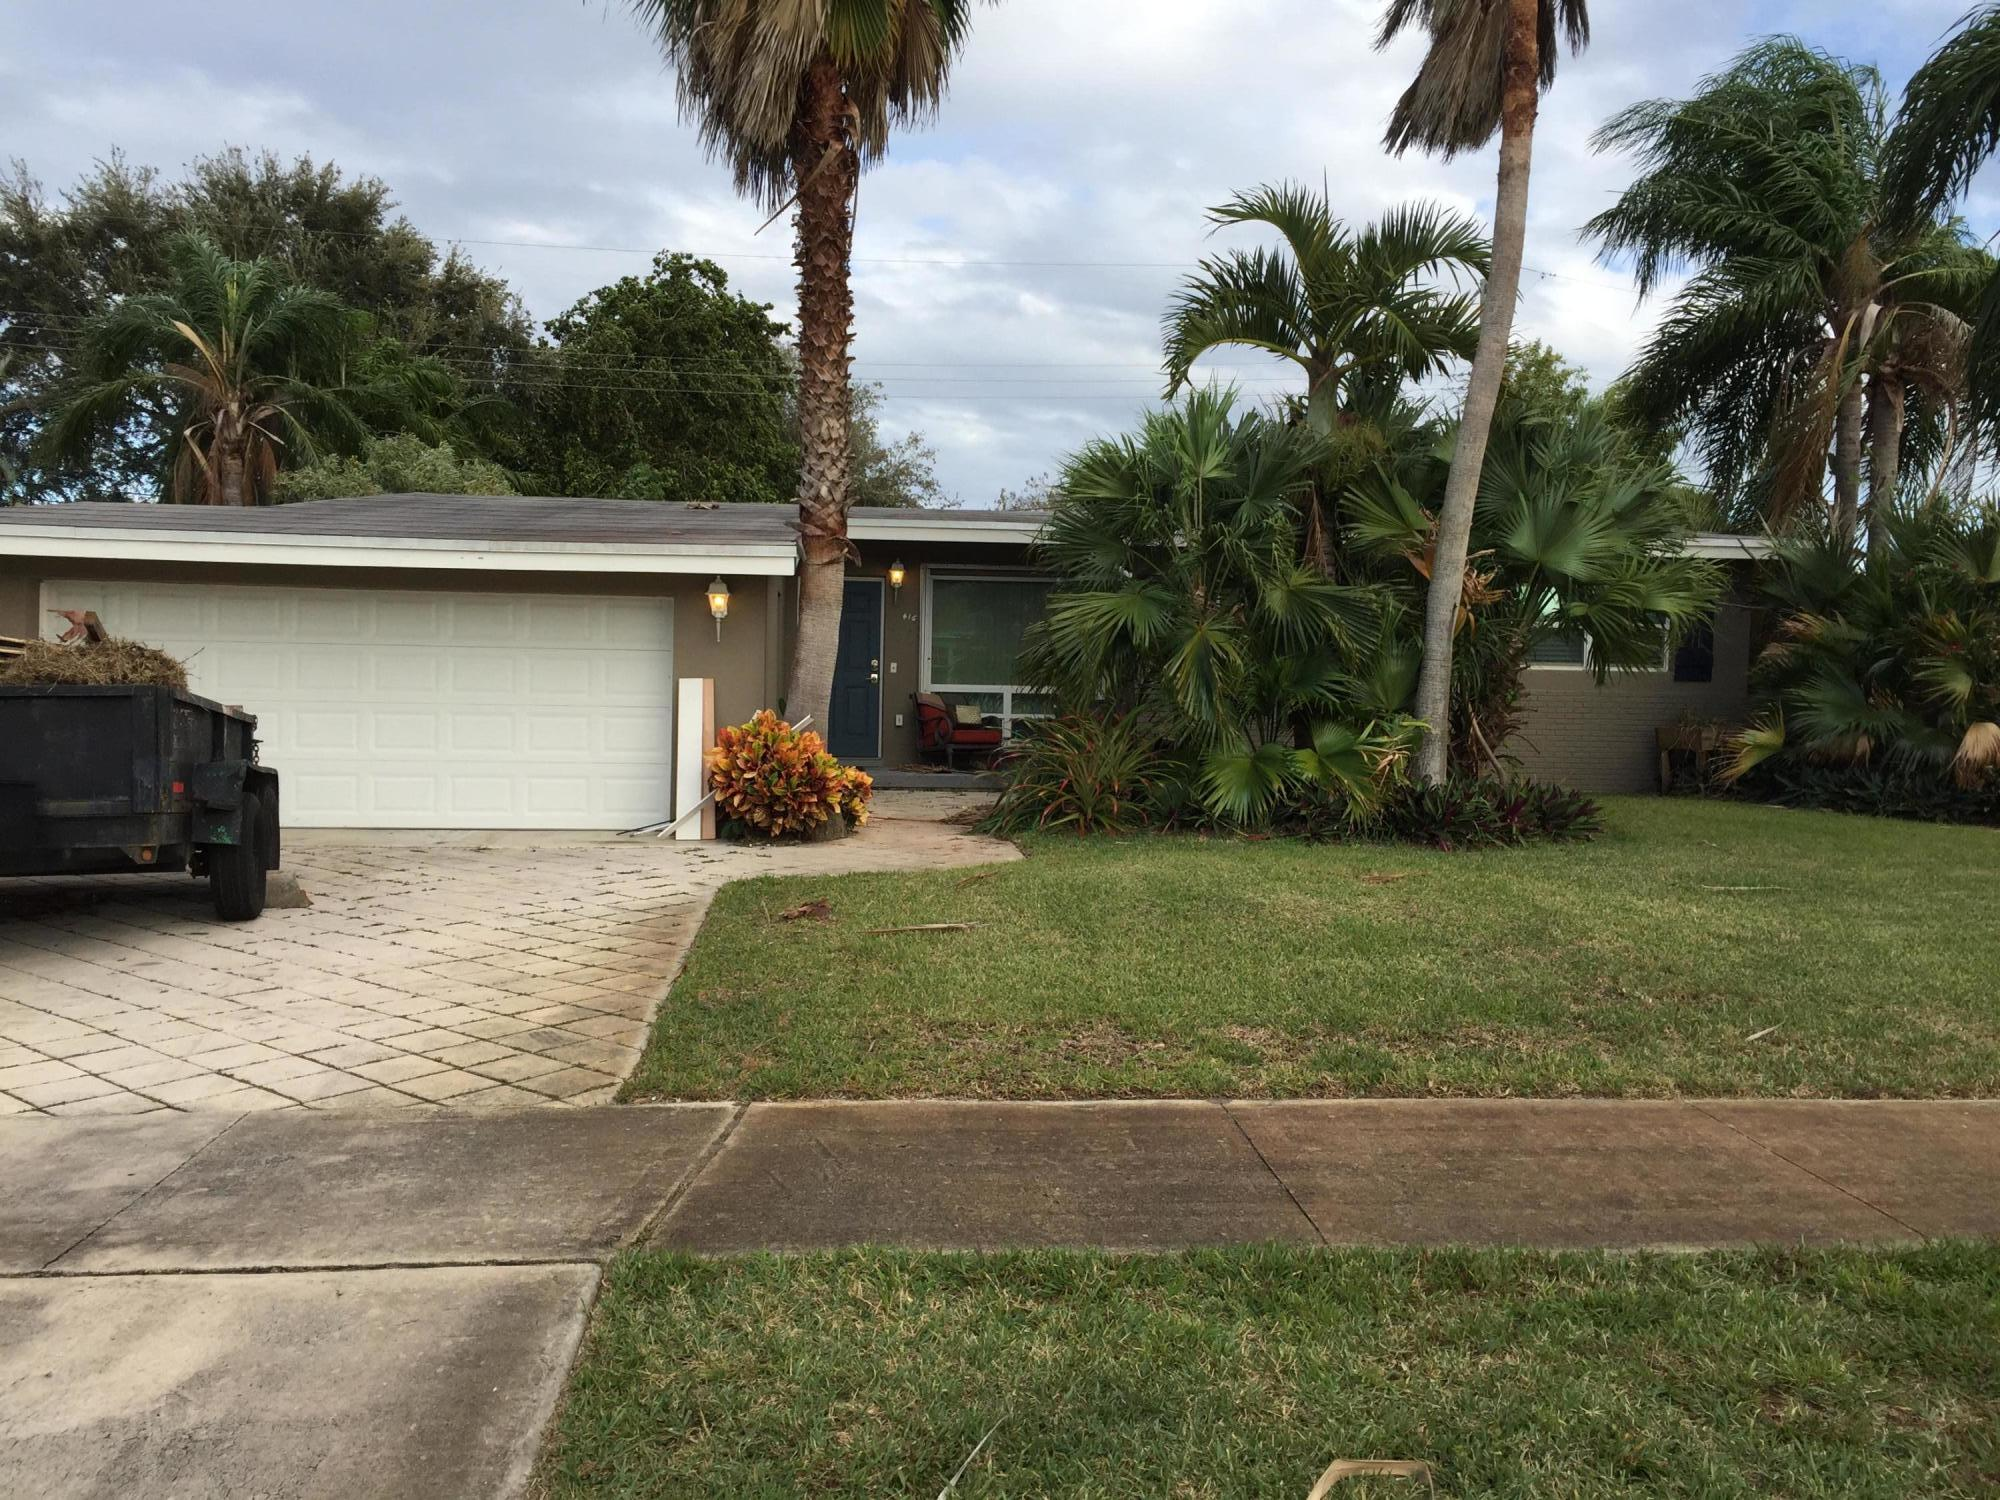 416 Westwind Drive, North Palm Beach, Florida 33408, 4 Bedrooms Bedrooms, ,2 BathroomsBathrooms,A,Single family,Westwind,RX-10490178